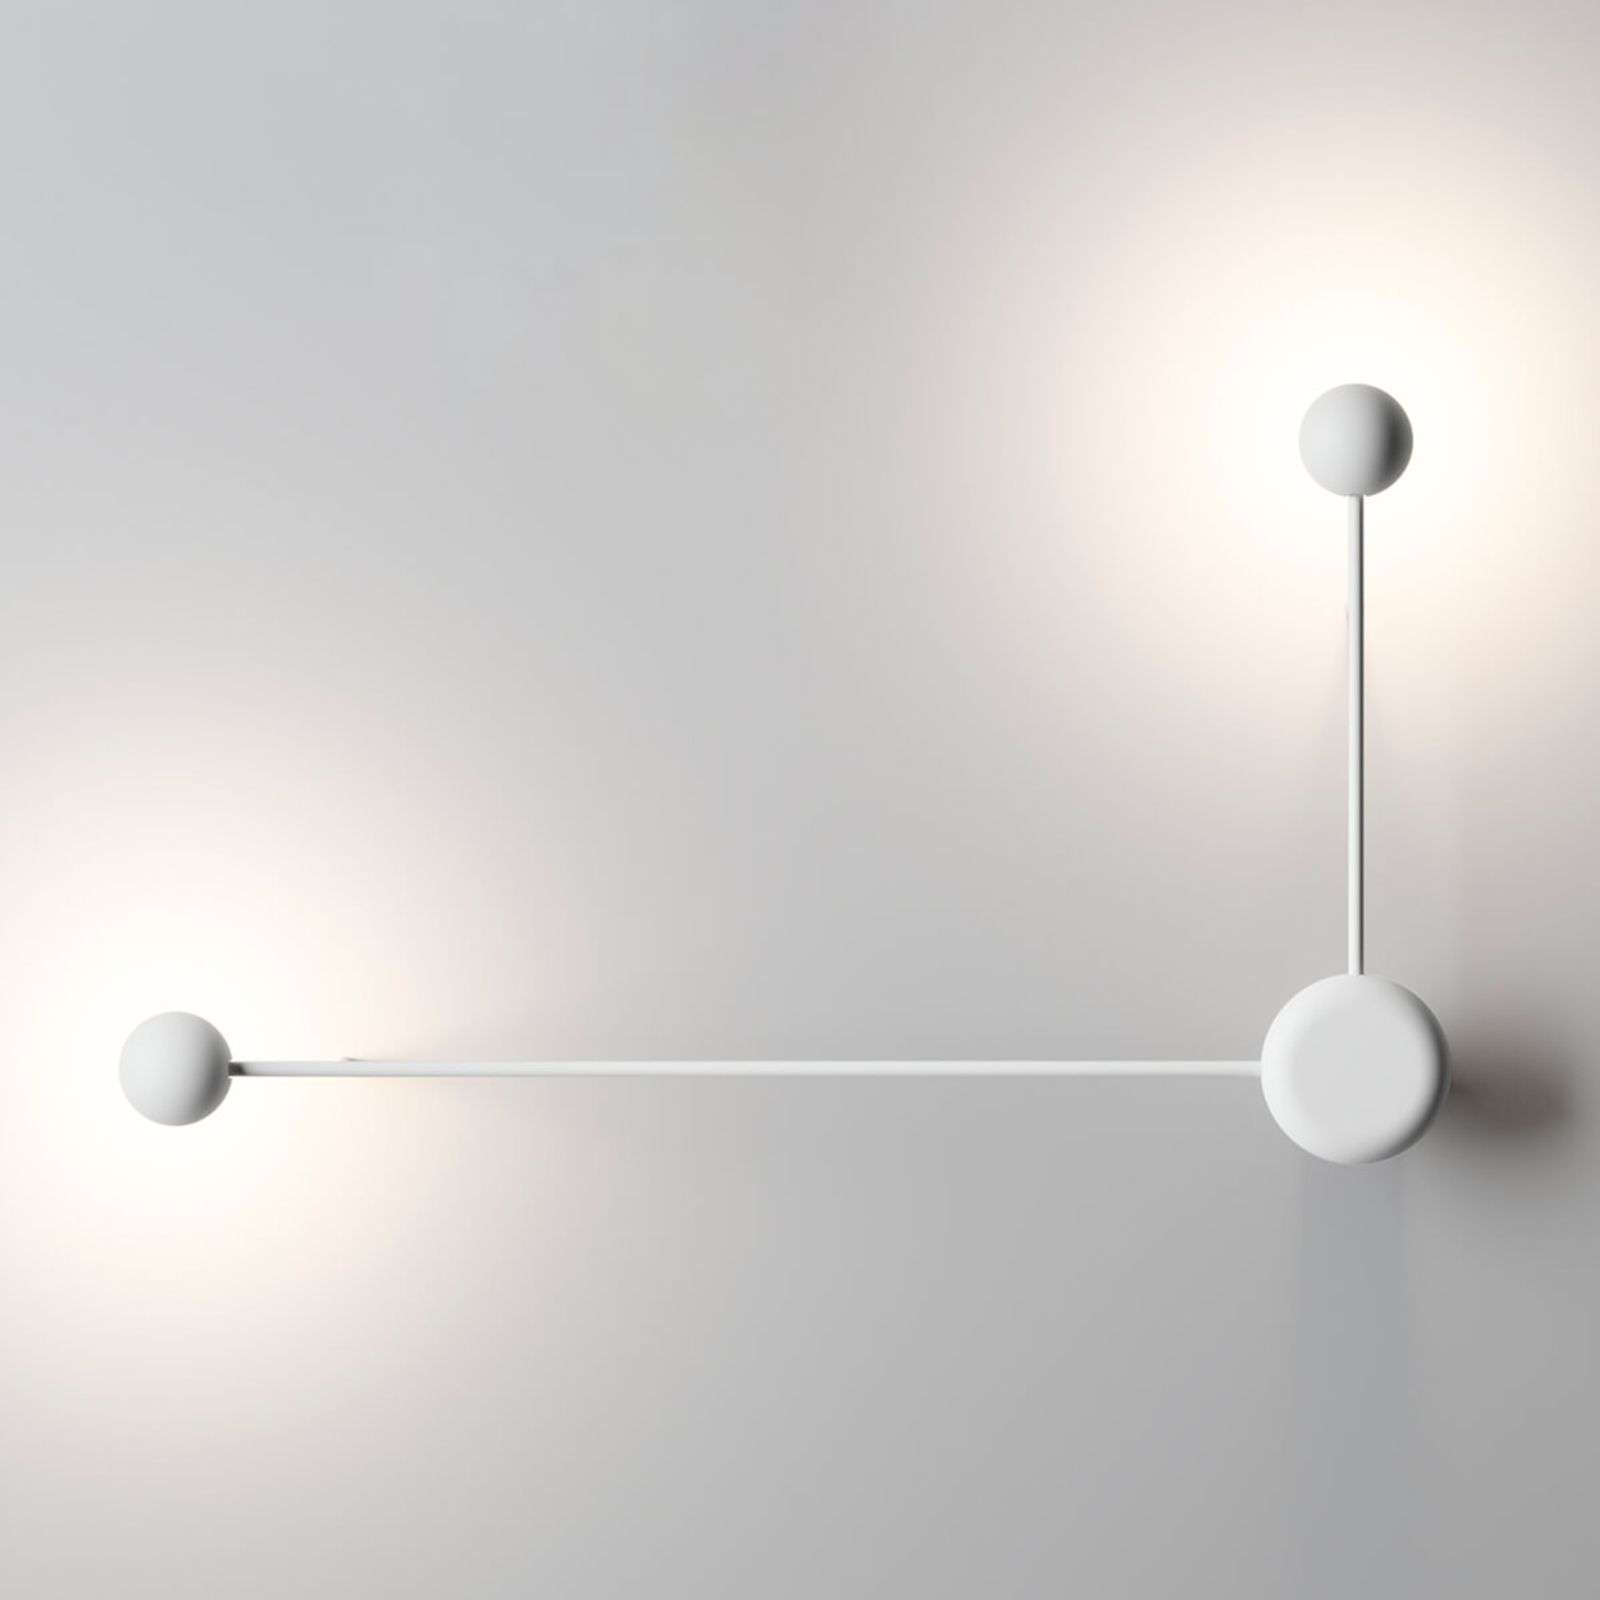 Applique LED Pin a 2 punti luce, bianca